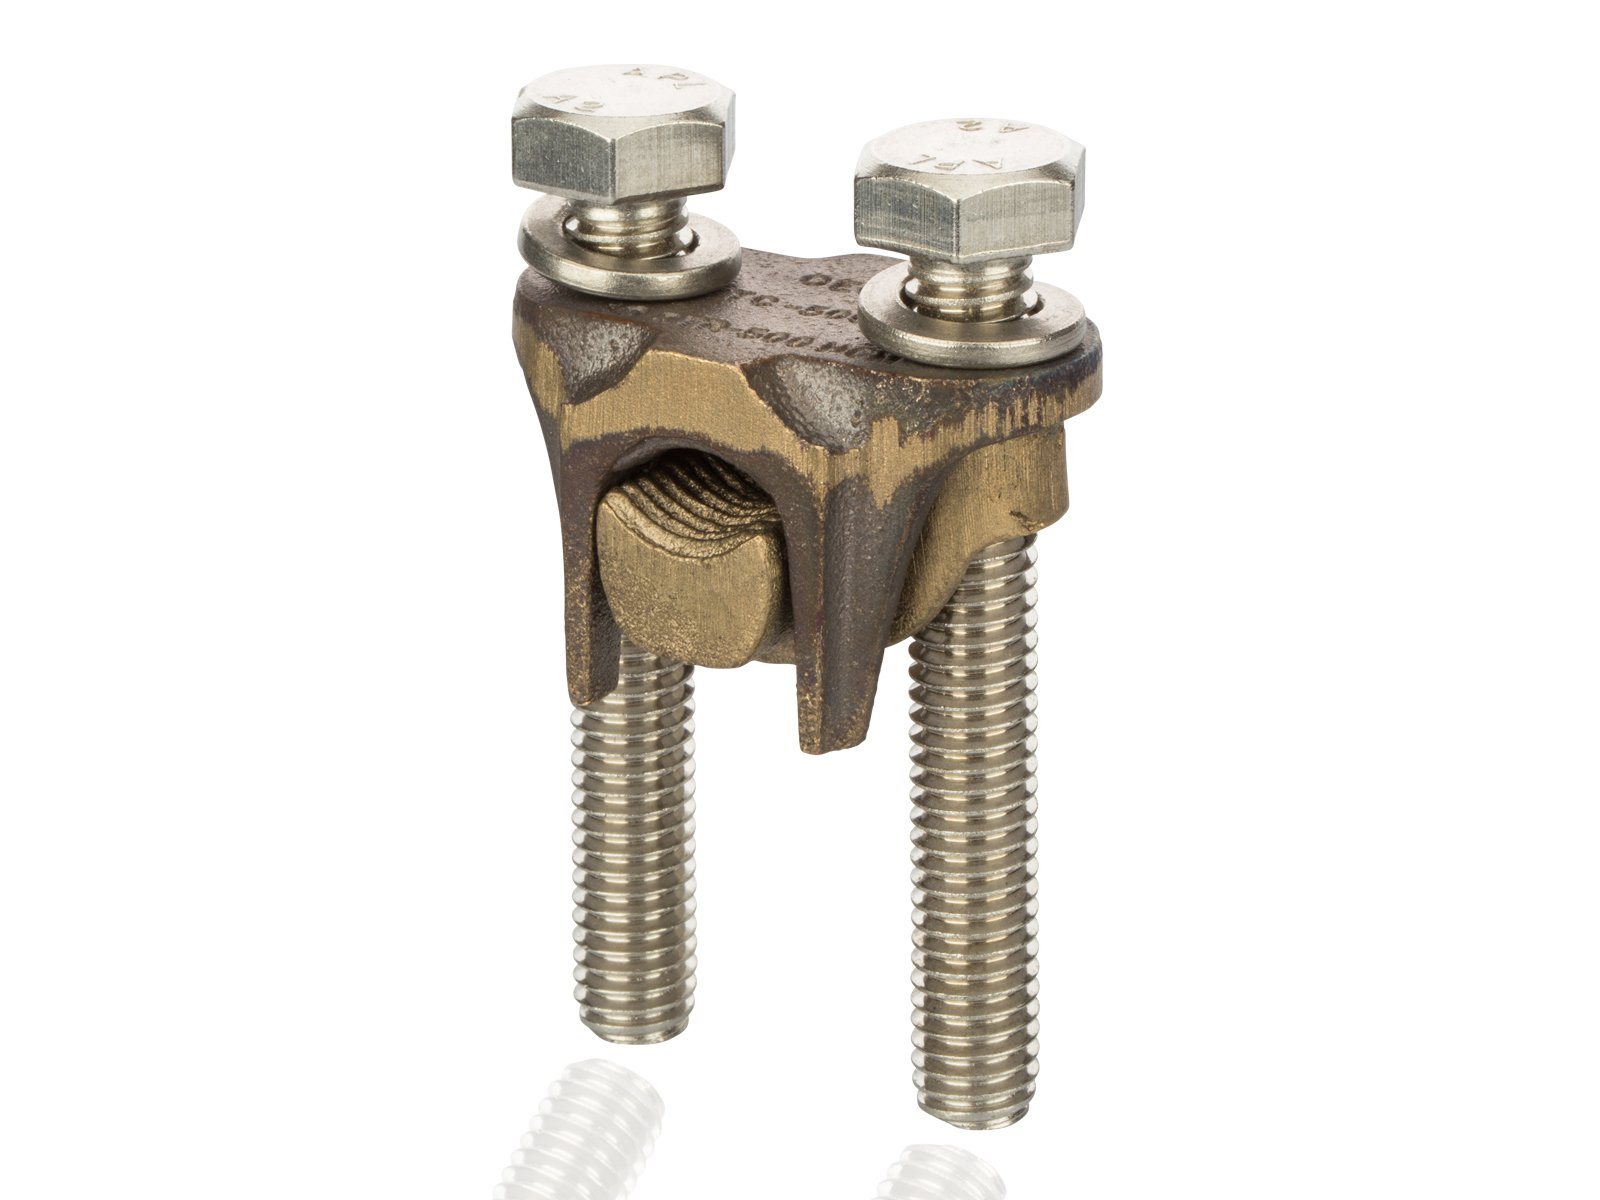 Tap Connector - Two-Bolt Bronze for Copper To Copper, 500 MCM-350 MCM Main Wire Range, 500 MCM-4 sol Tap Wire Range by NSi Industries, LLC